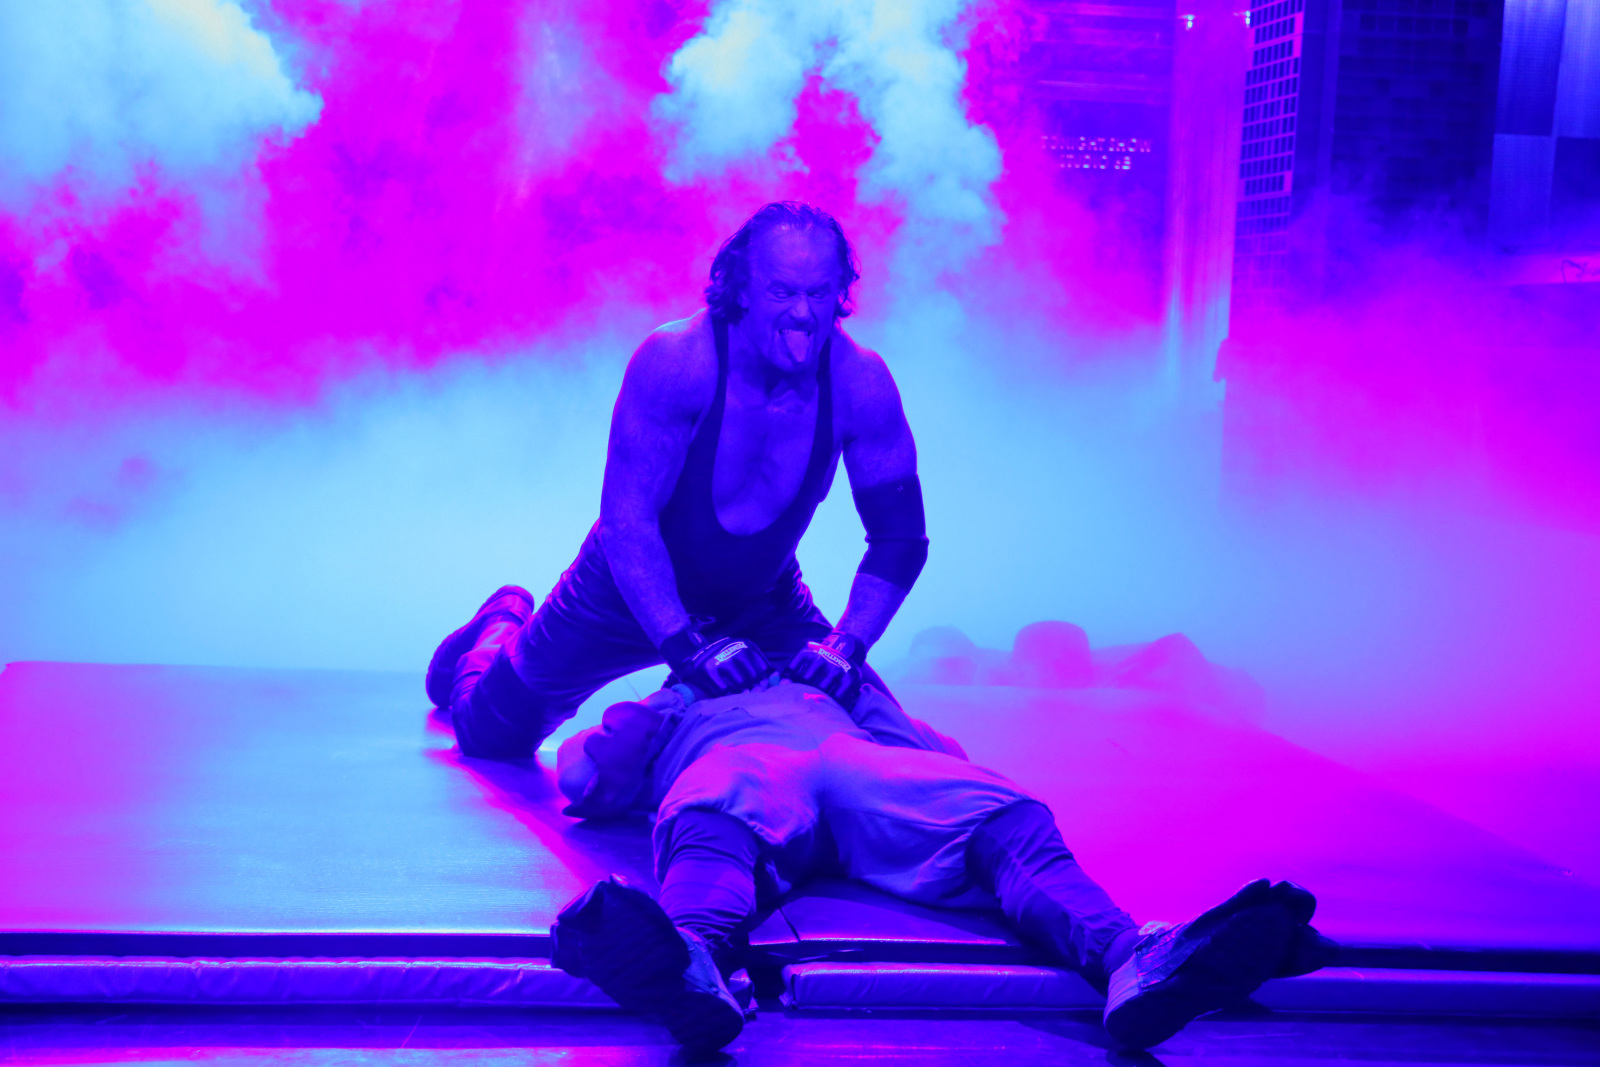 WWE: The Boneyard Match was legendary, and we need more of these matches